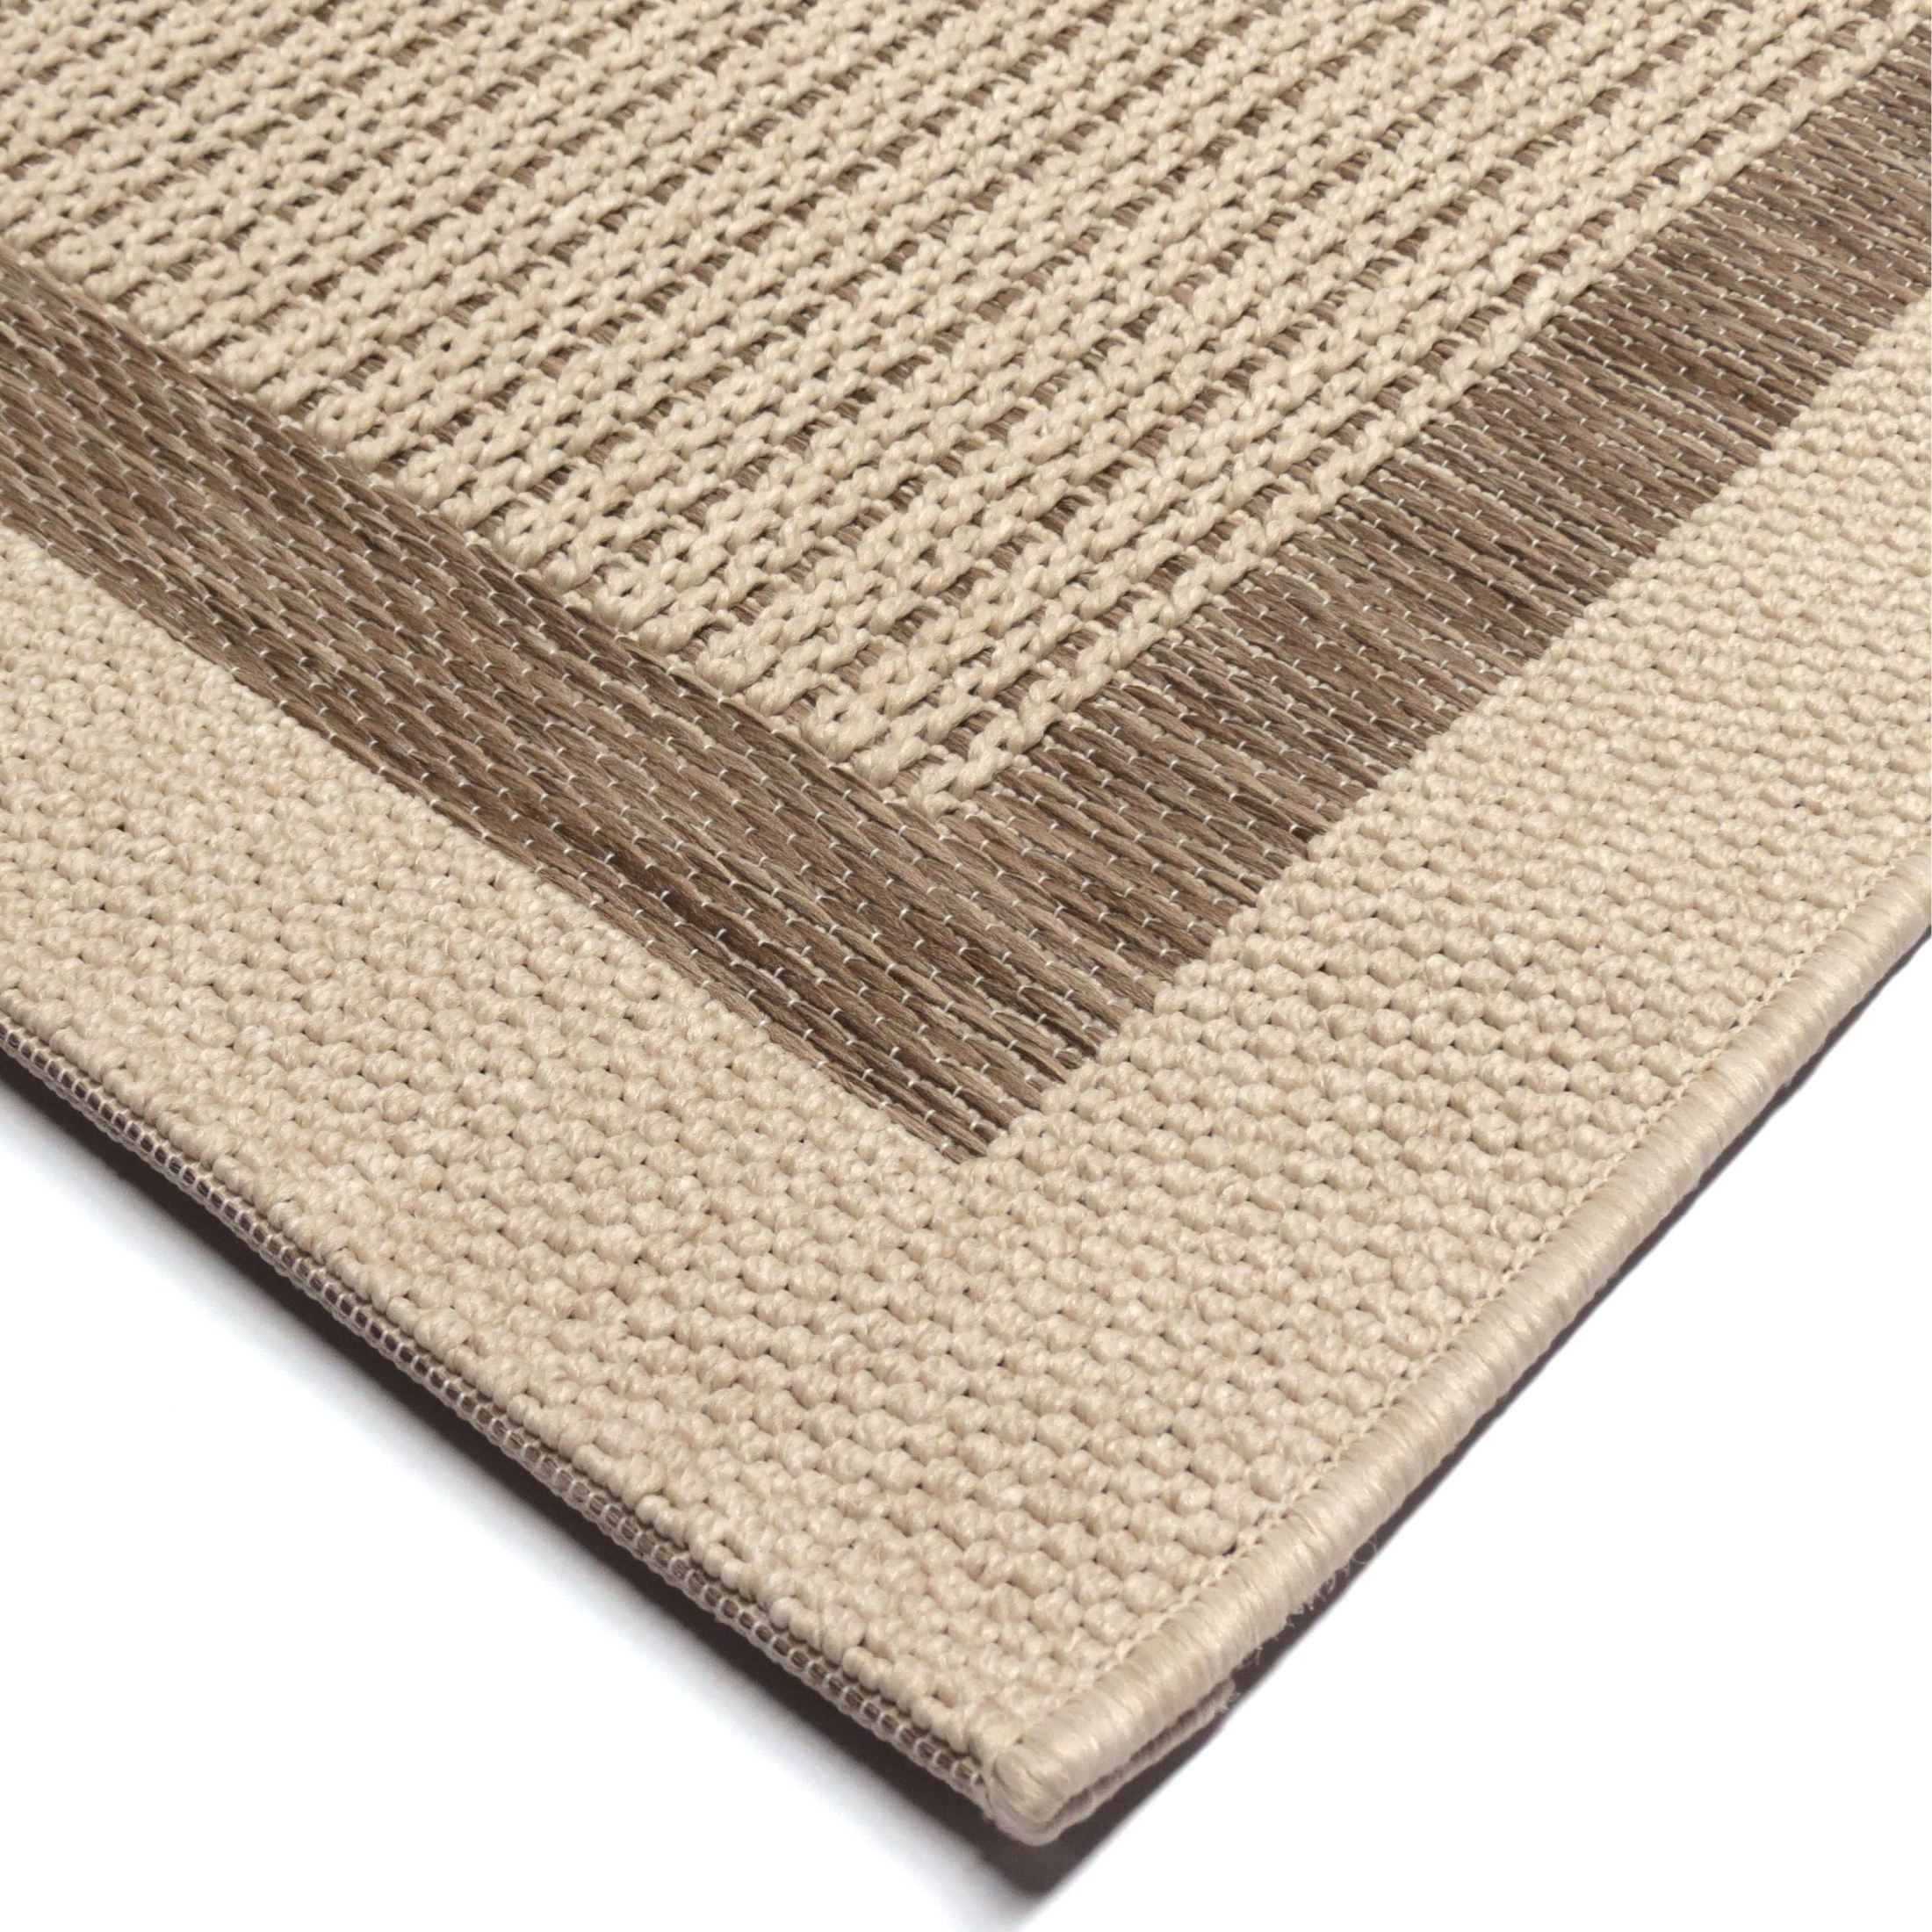 Orian Rugs Indoor Outdoor Border Aviva Tan Area Rug